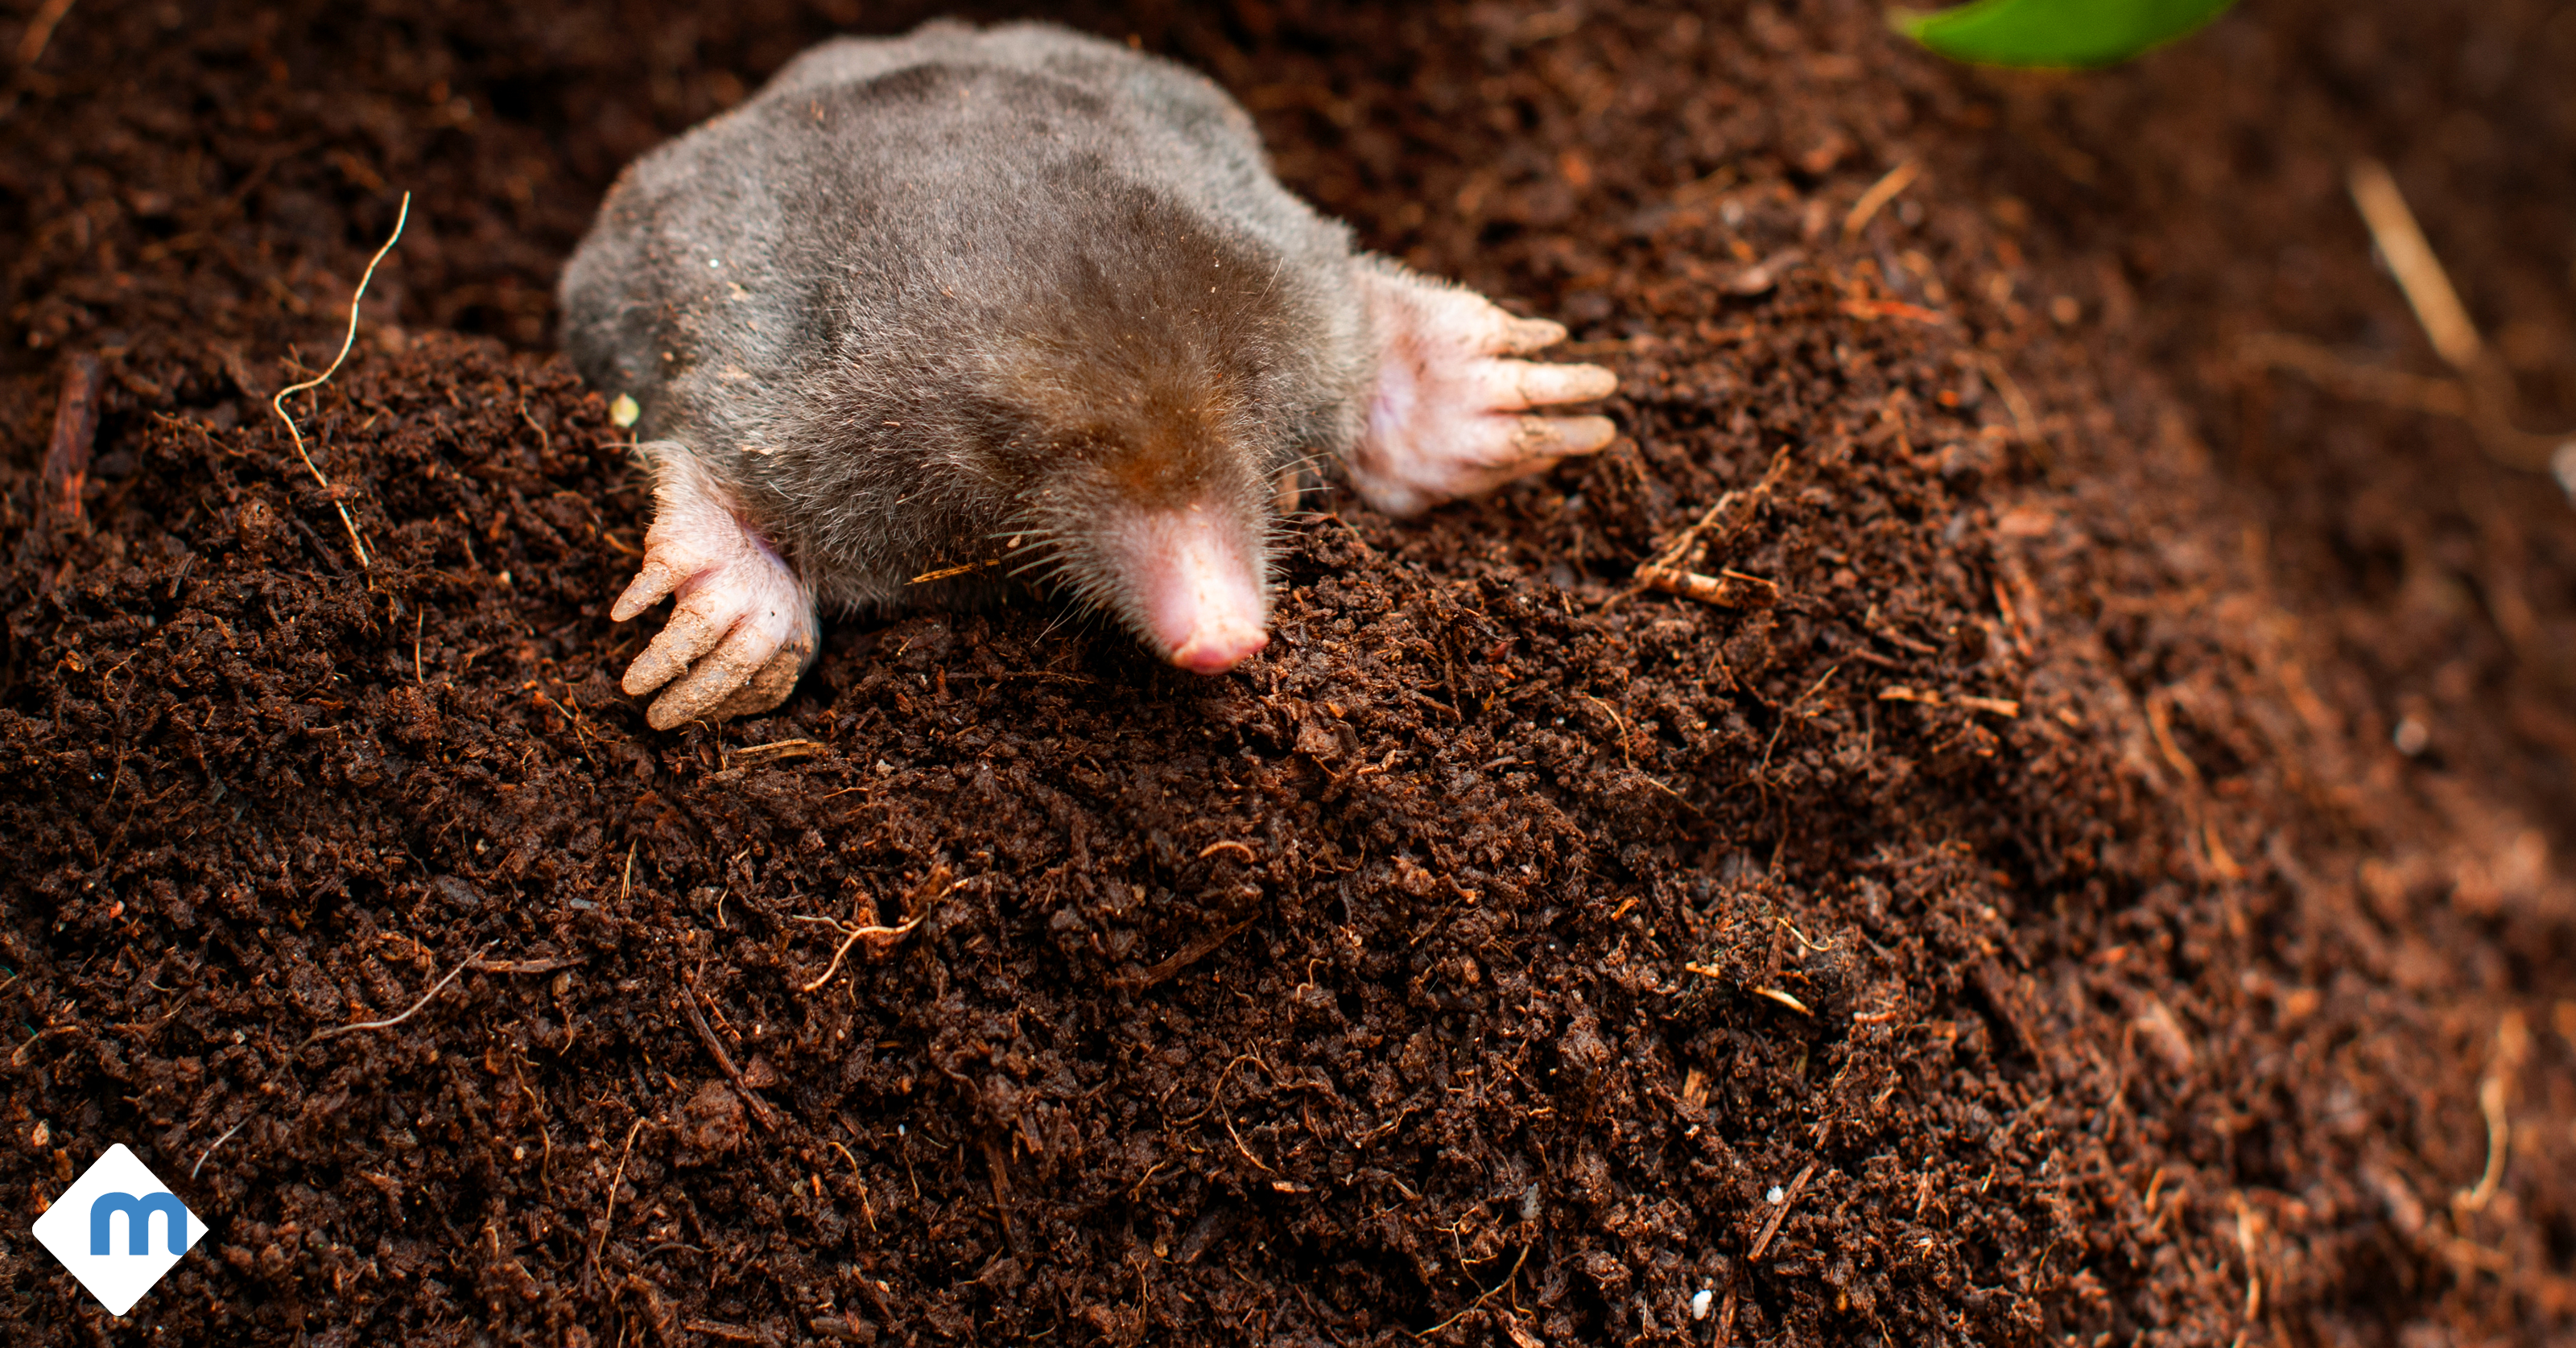 Voles, Moles, \u0026 Gophers\u2026 Oh My! Controlling Burrowing Pests